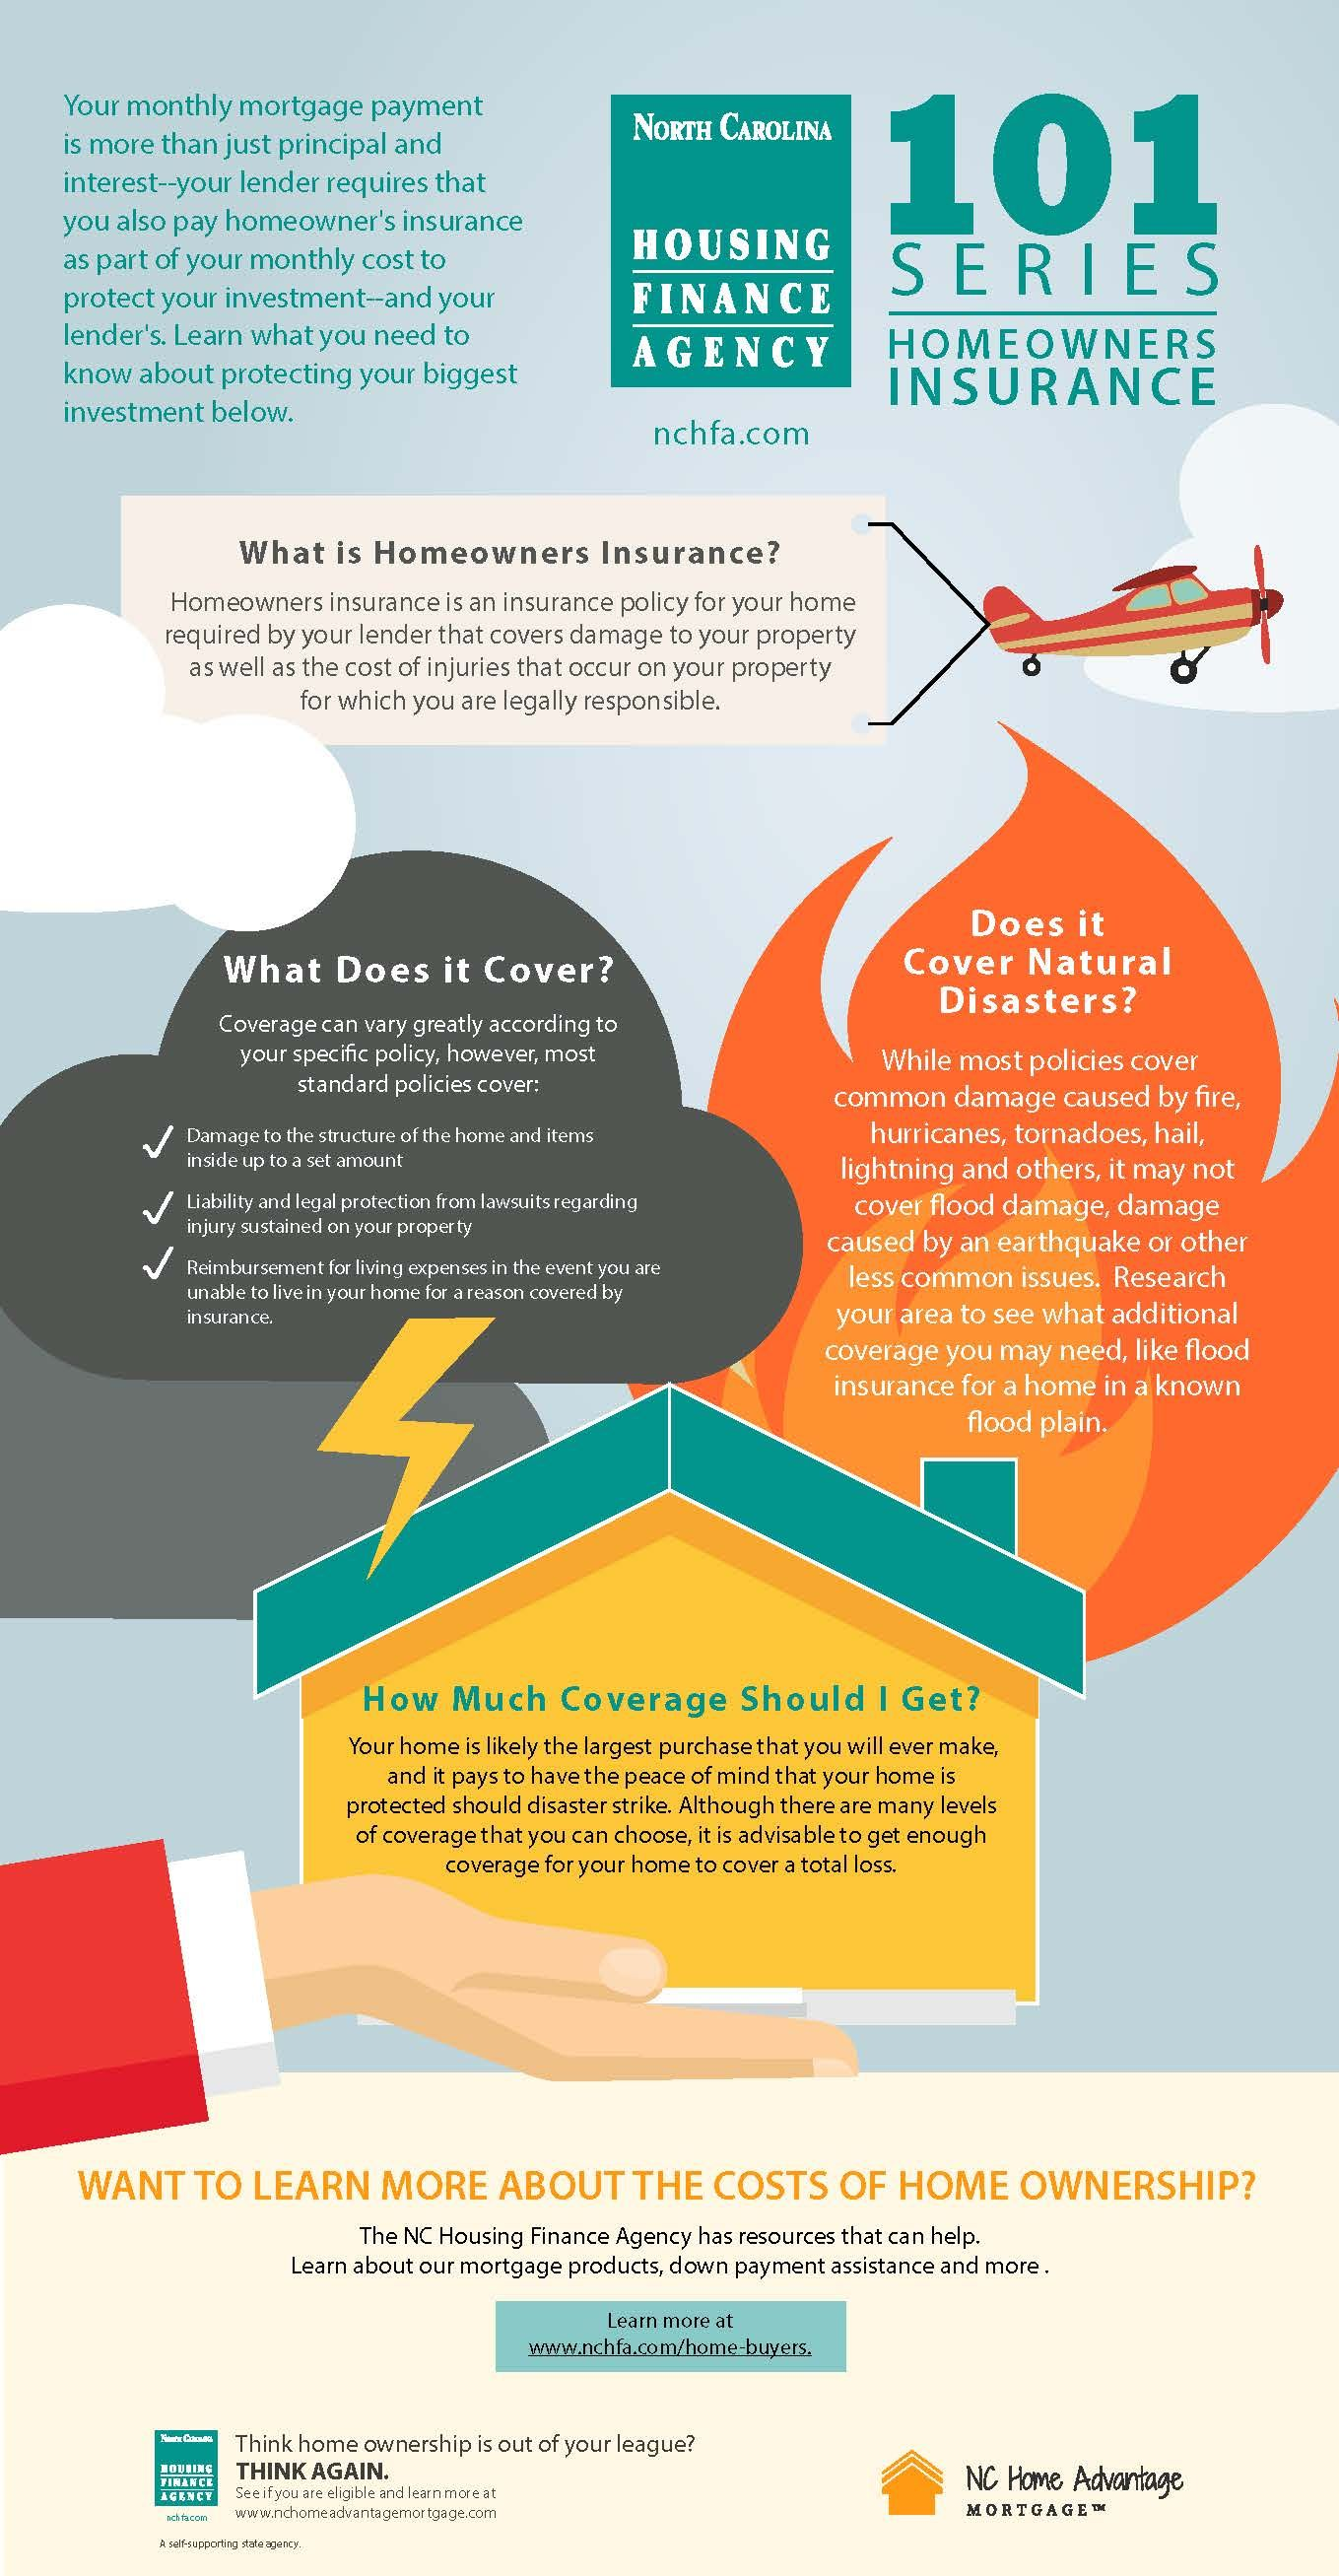 Do you have to get homeowners insurance through the lender